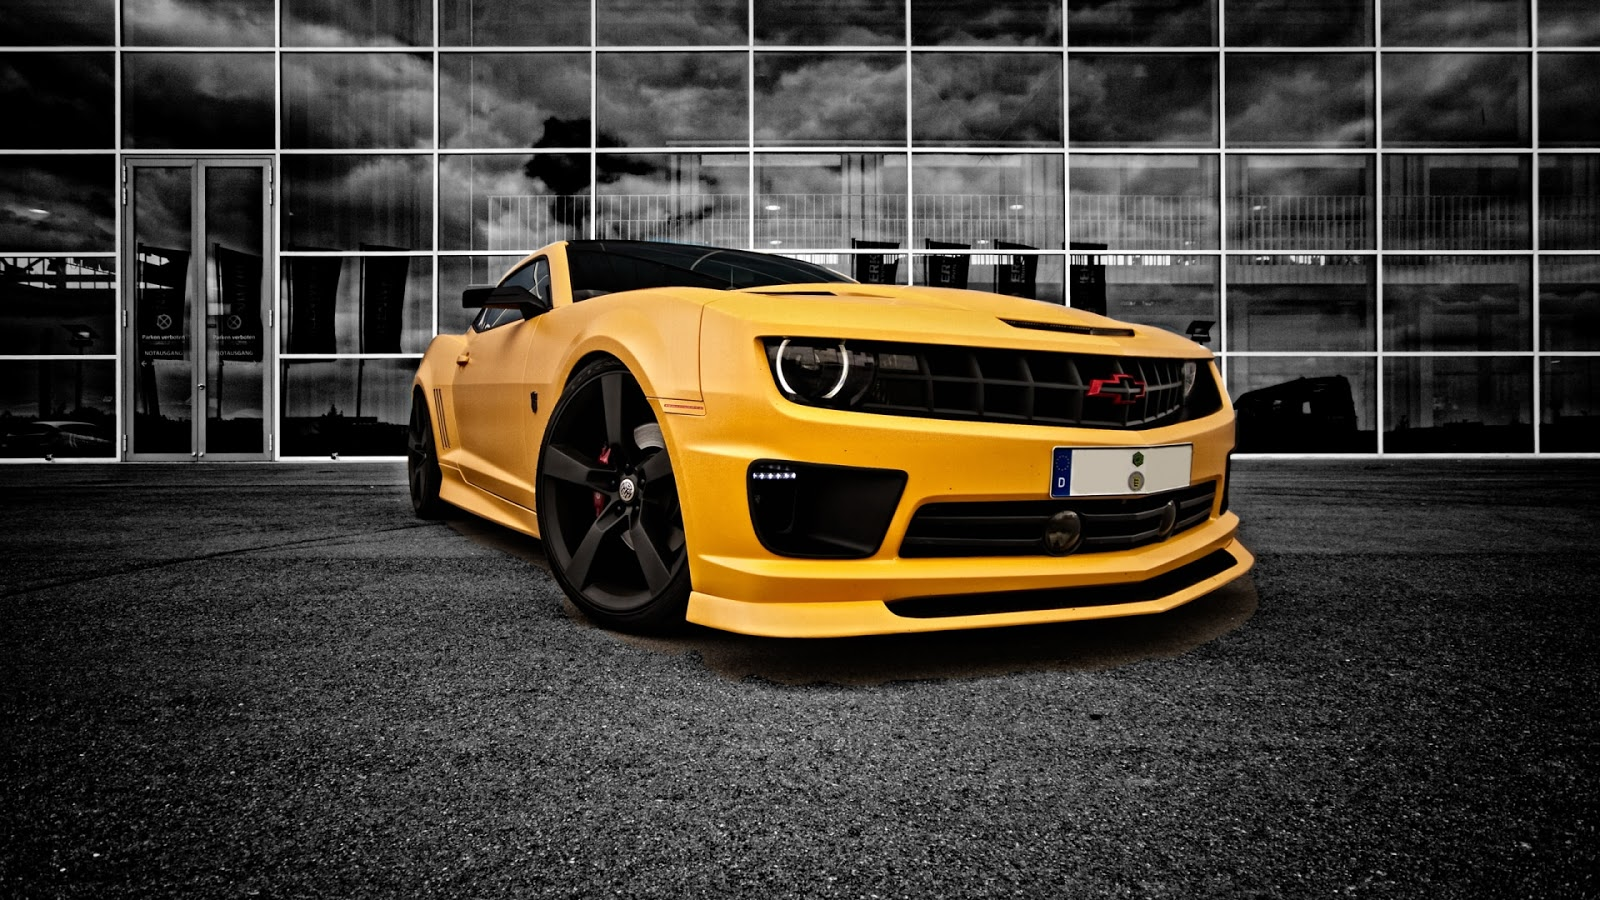 Hd Wallpapers Cars 20 Wallpaper Automotive Lux